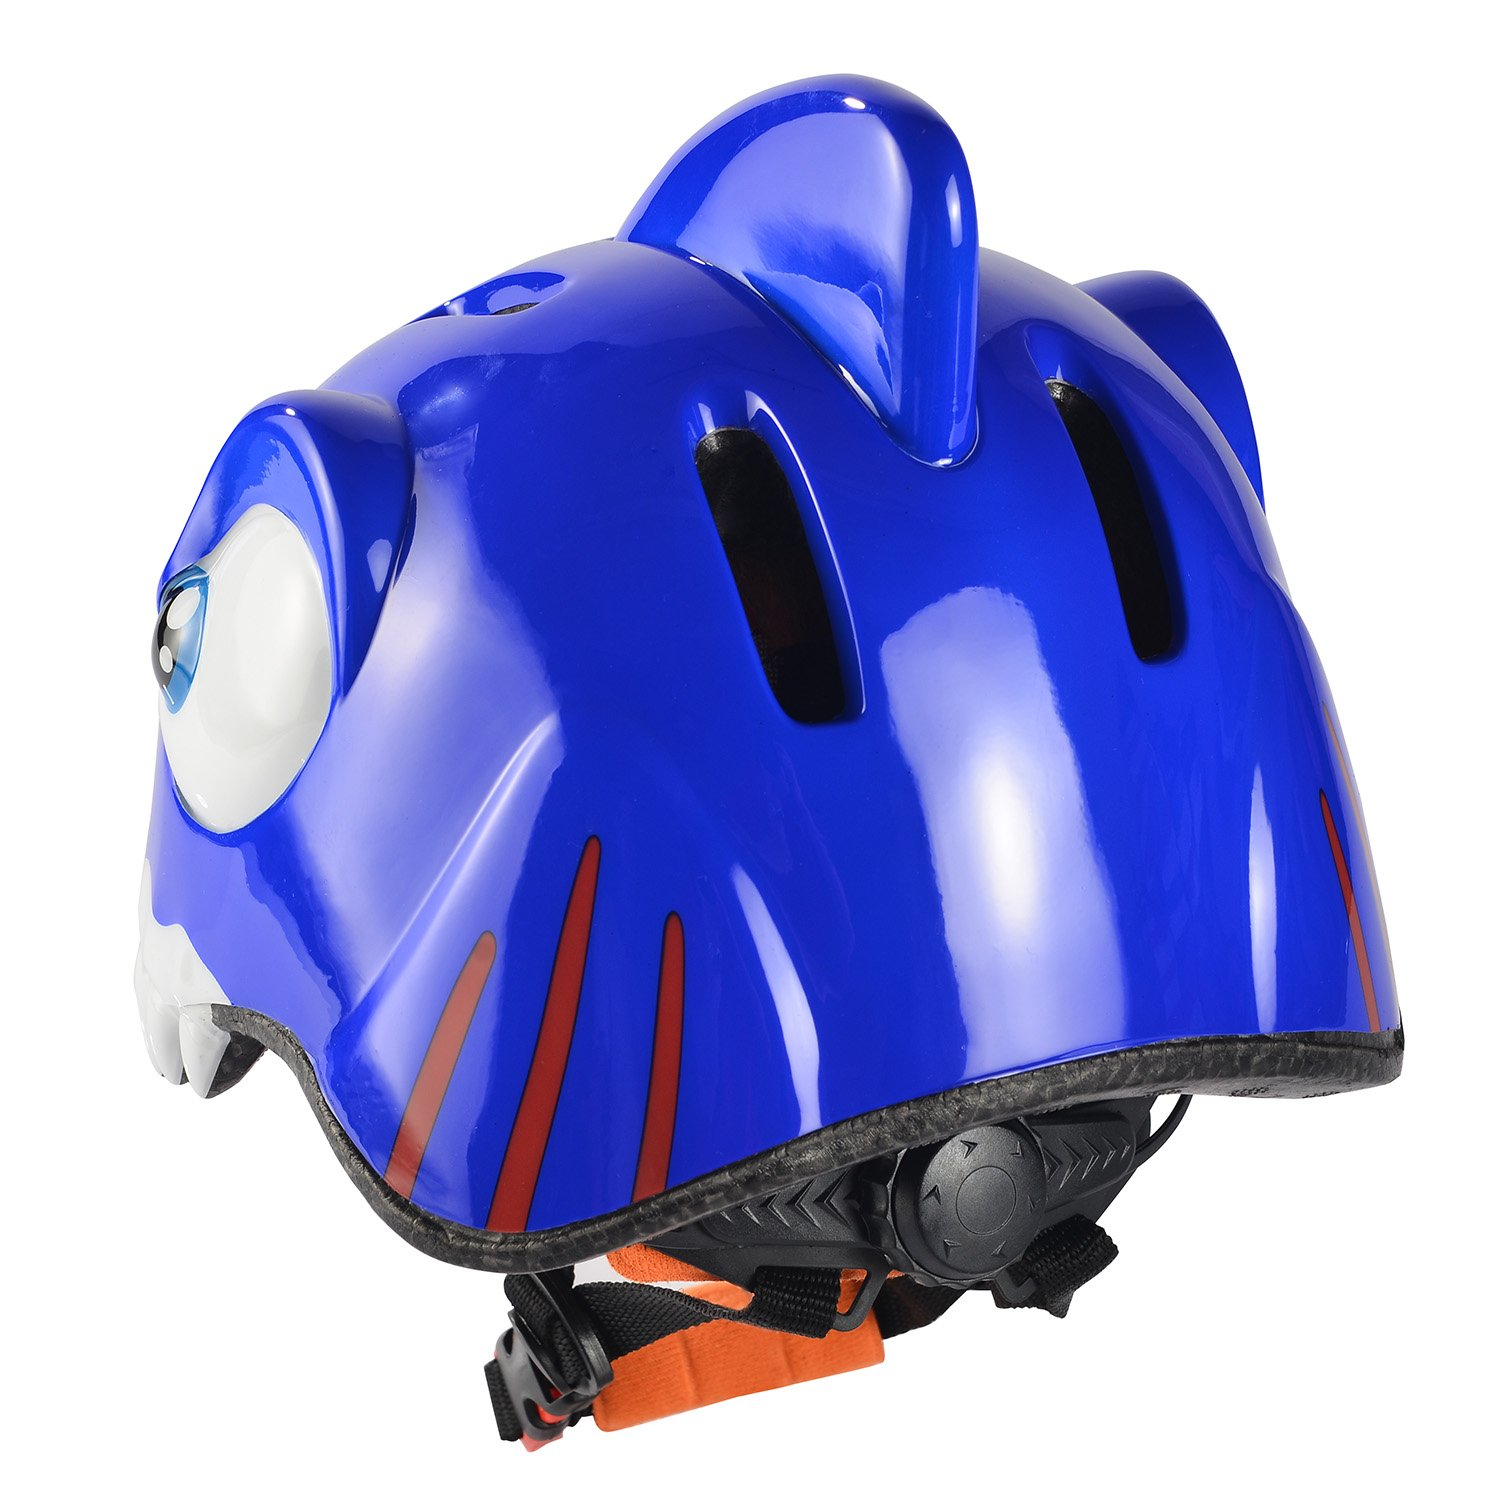 Amazon.com : Chaokele kids helmets Childrens cute shark shape design safe bike helmet blue : Toys & Games